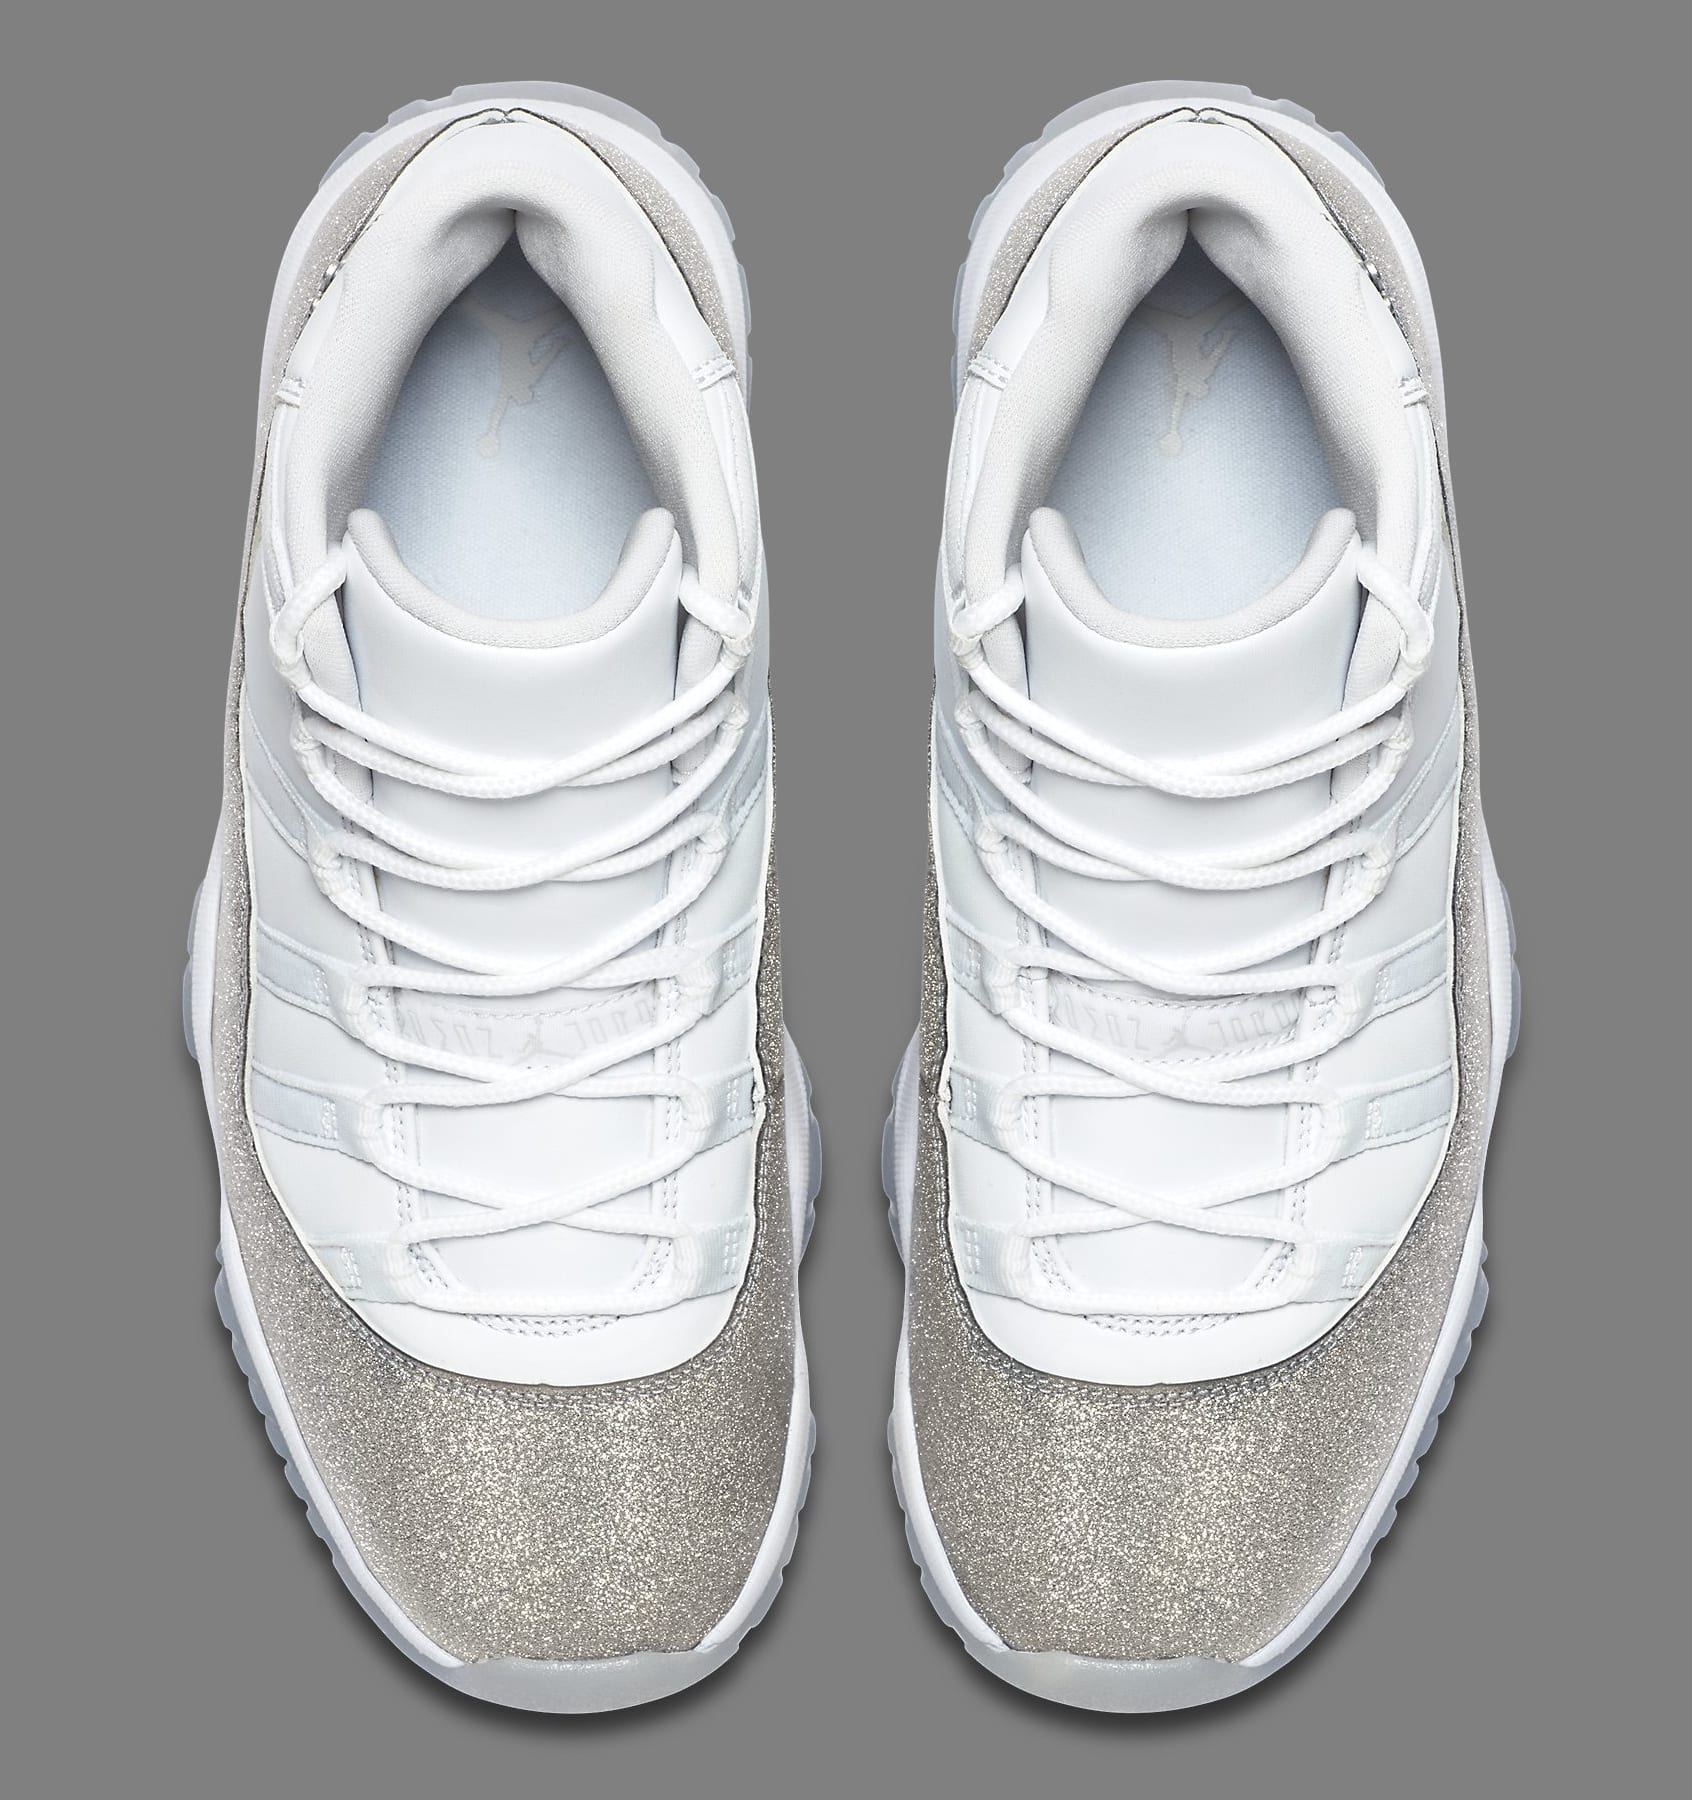 air-jordan-11-xi-womens-vast-grey-metallic-silver-ar0715-100-top